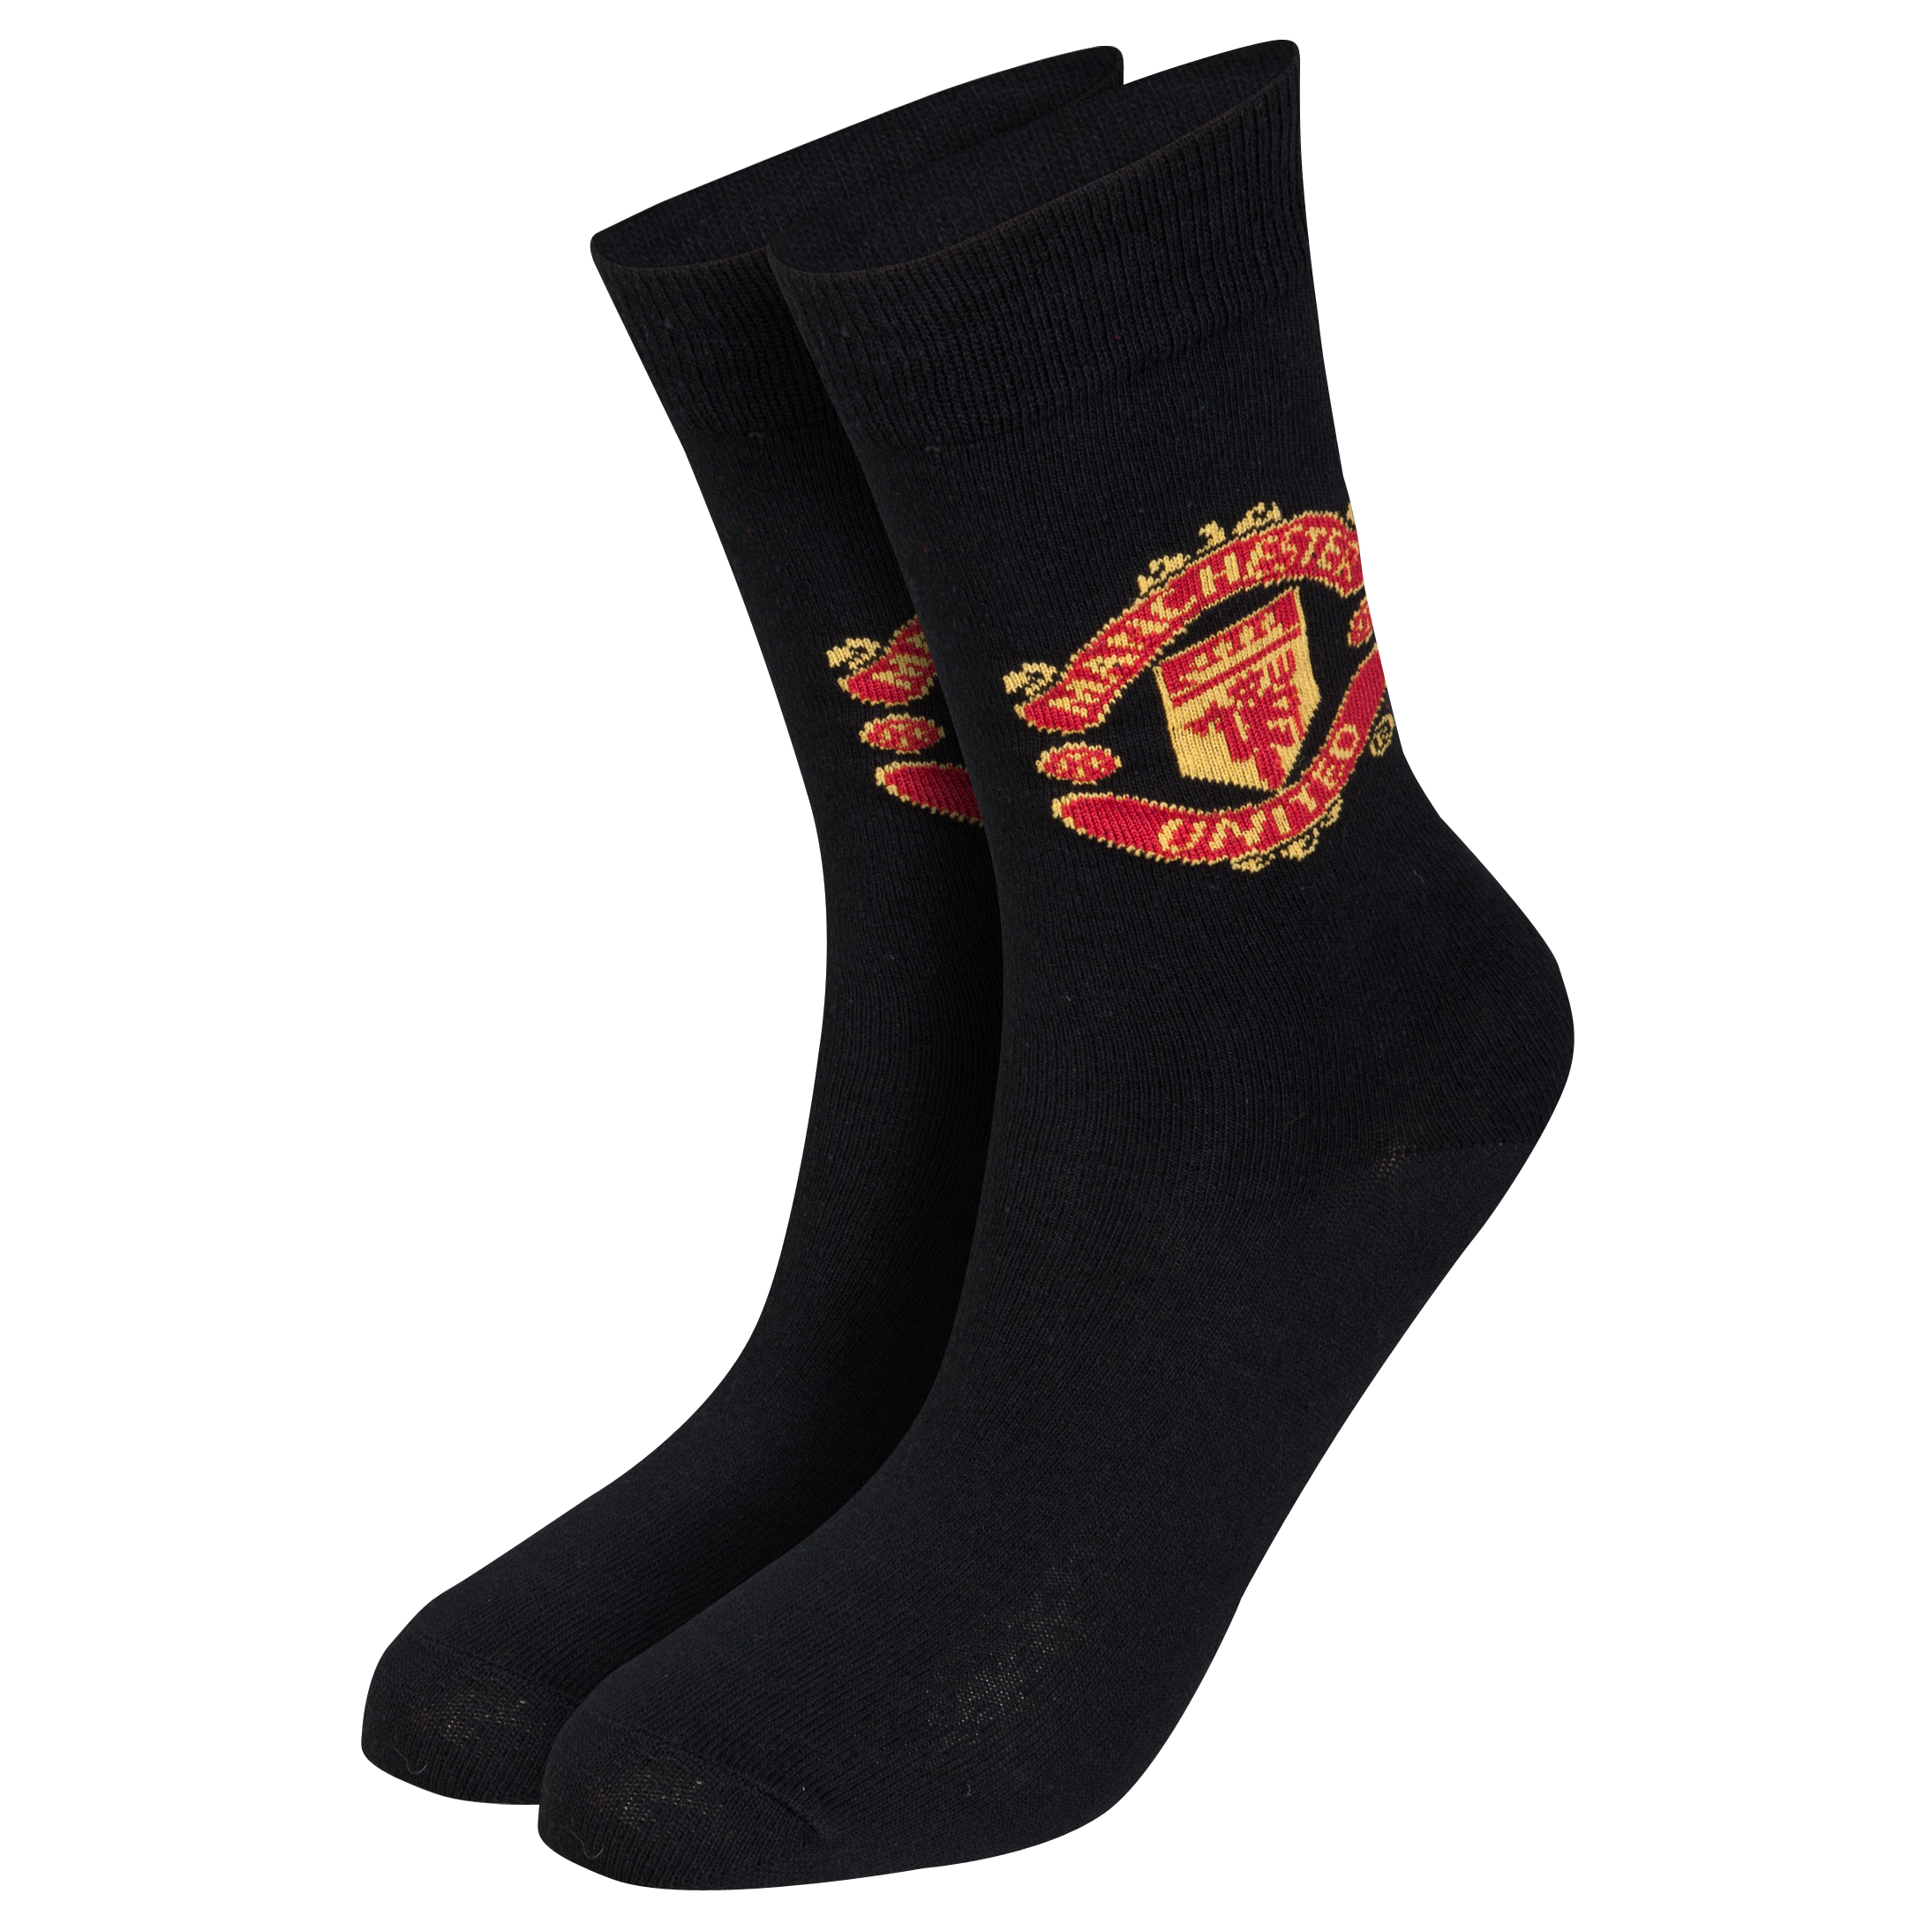 Manchester United Crest Socks - Kids Black